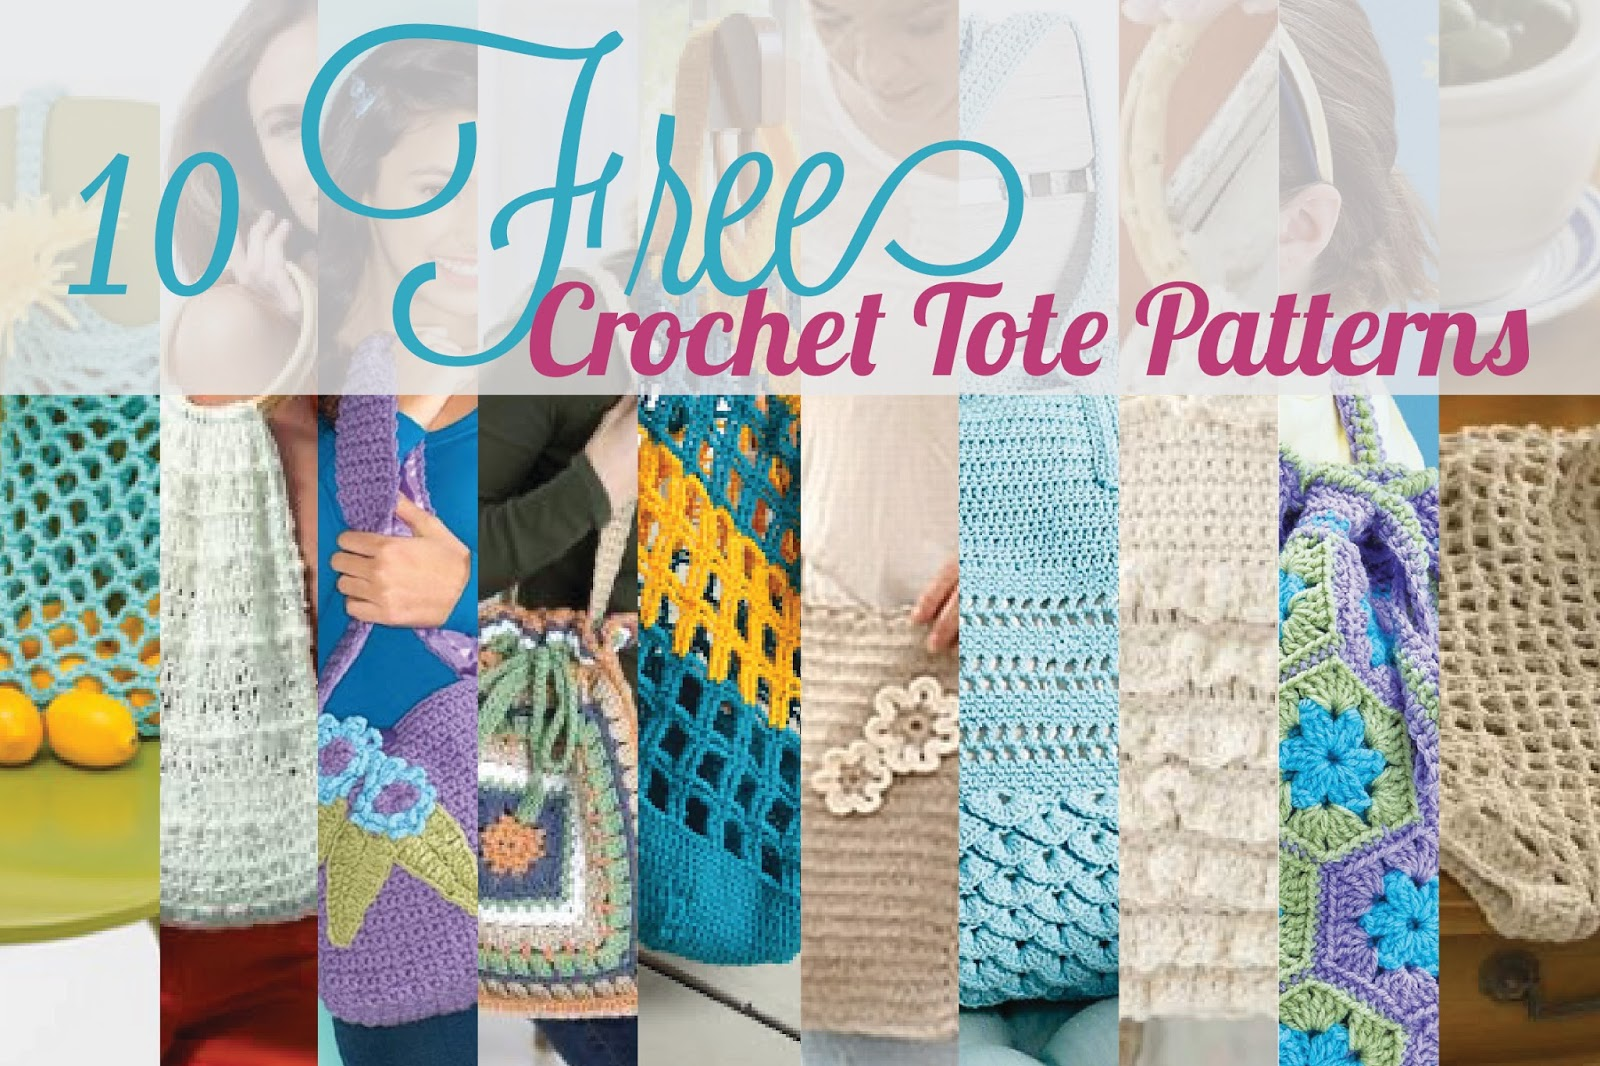 Cottontail Crochet: 10 Free Crochet Tote Patterns